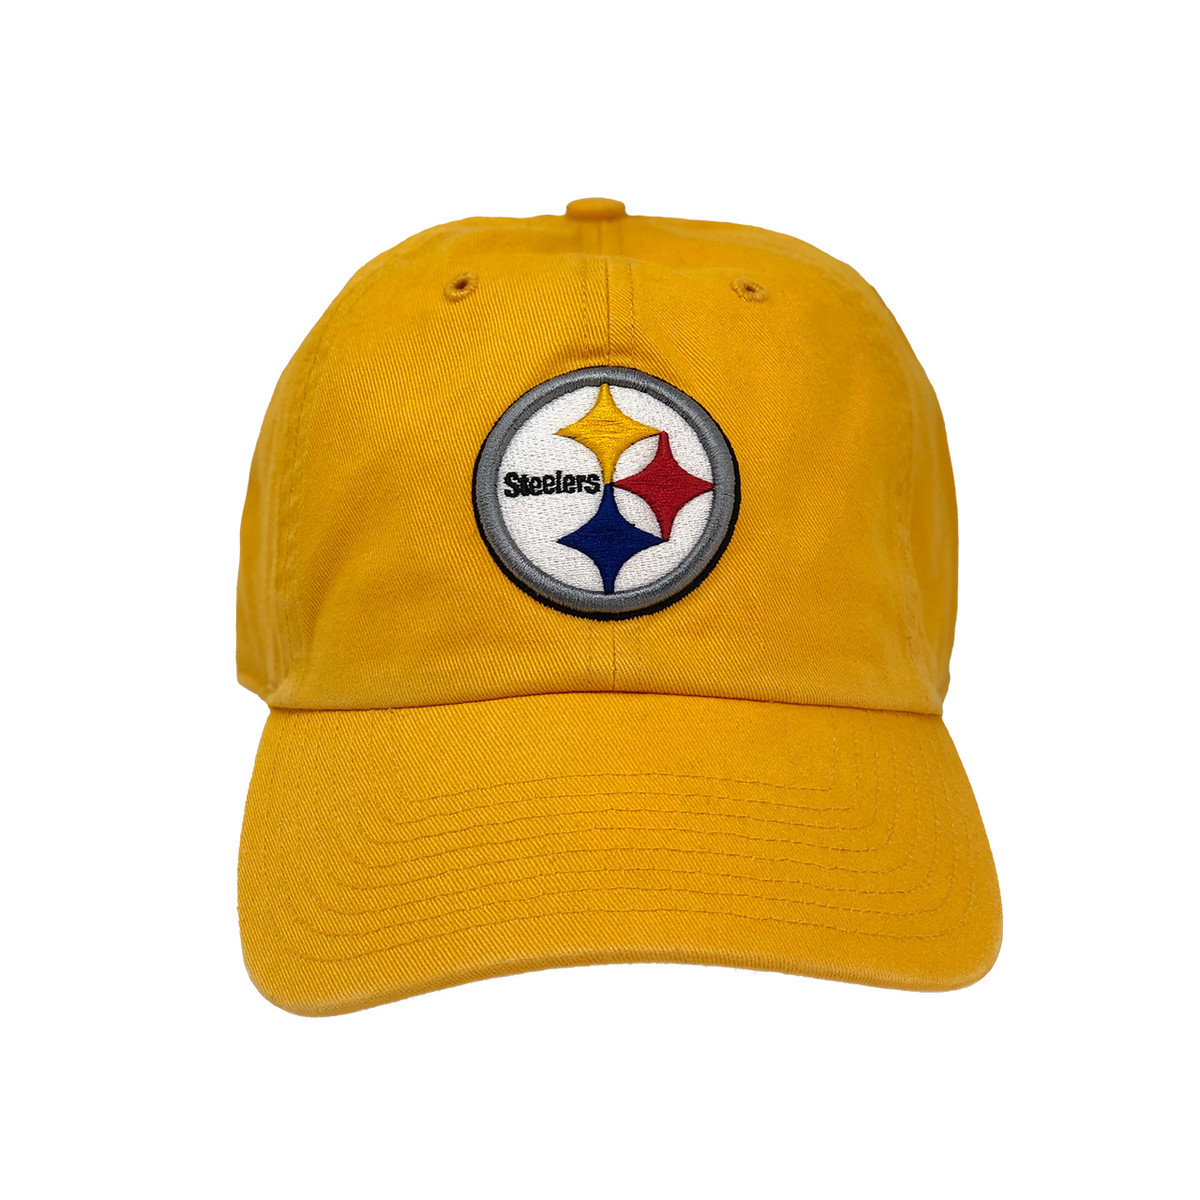 Steelers Fitted OTS Challenger Gold